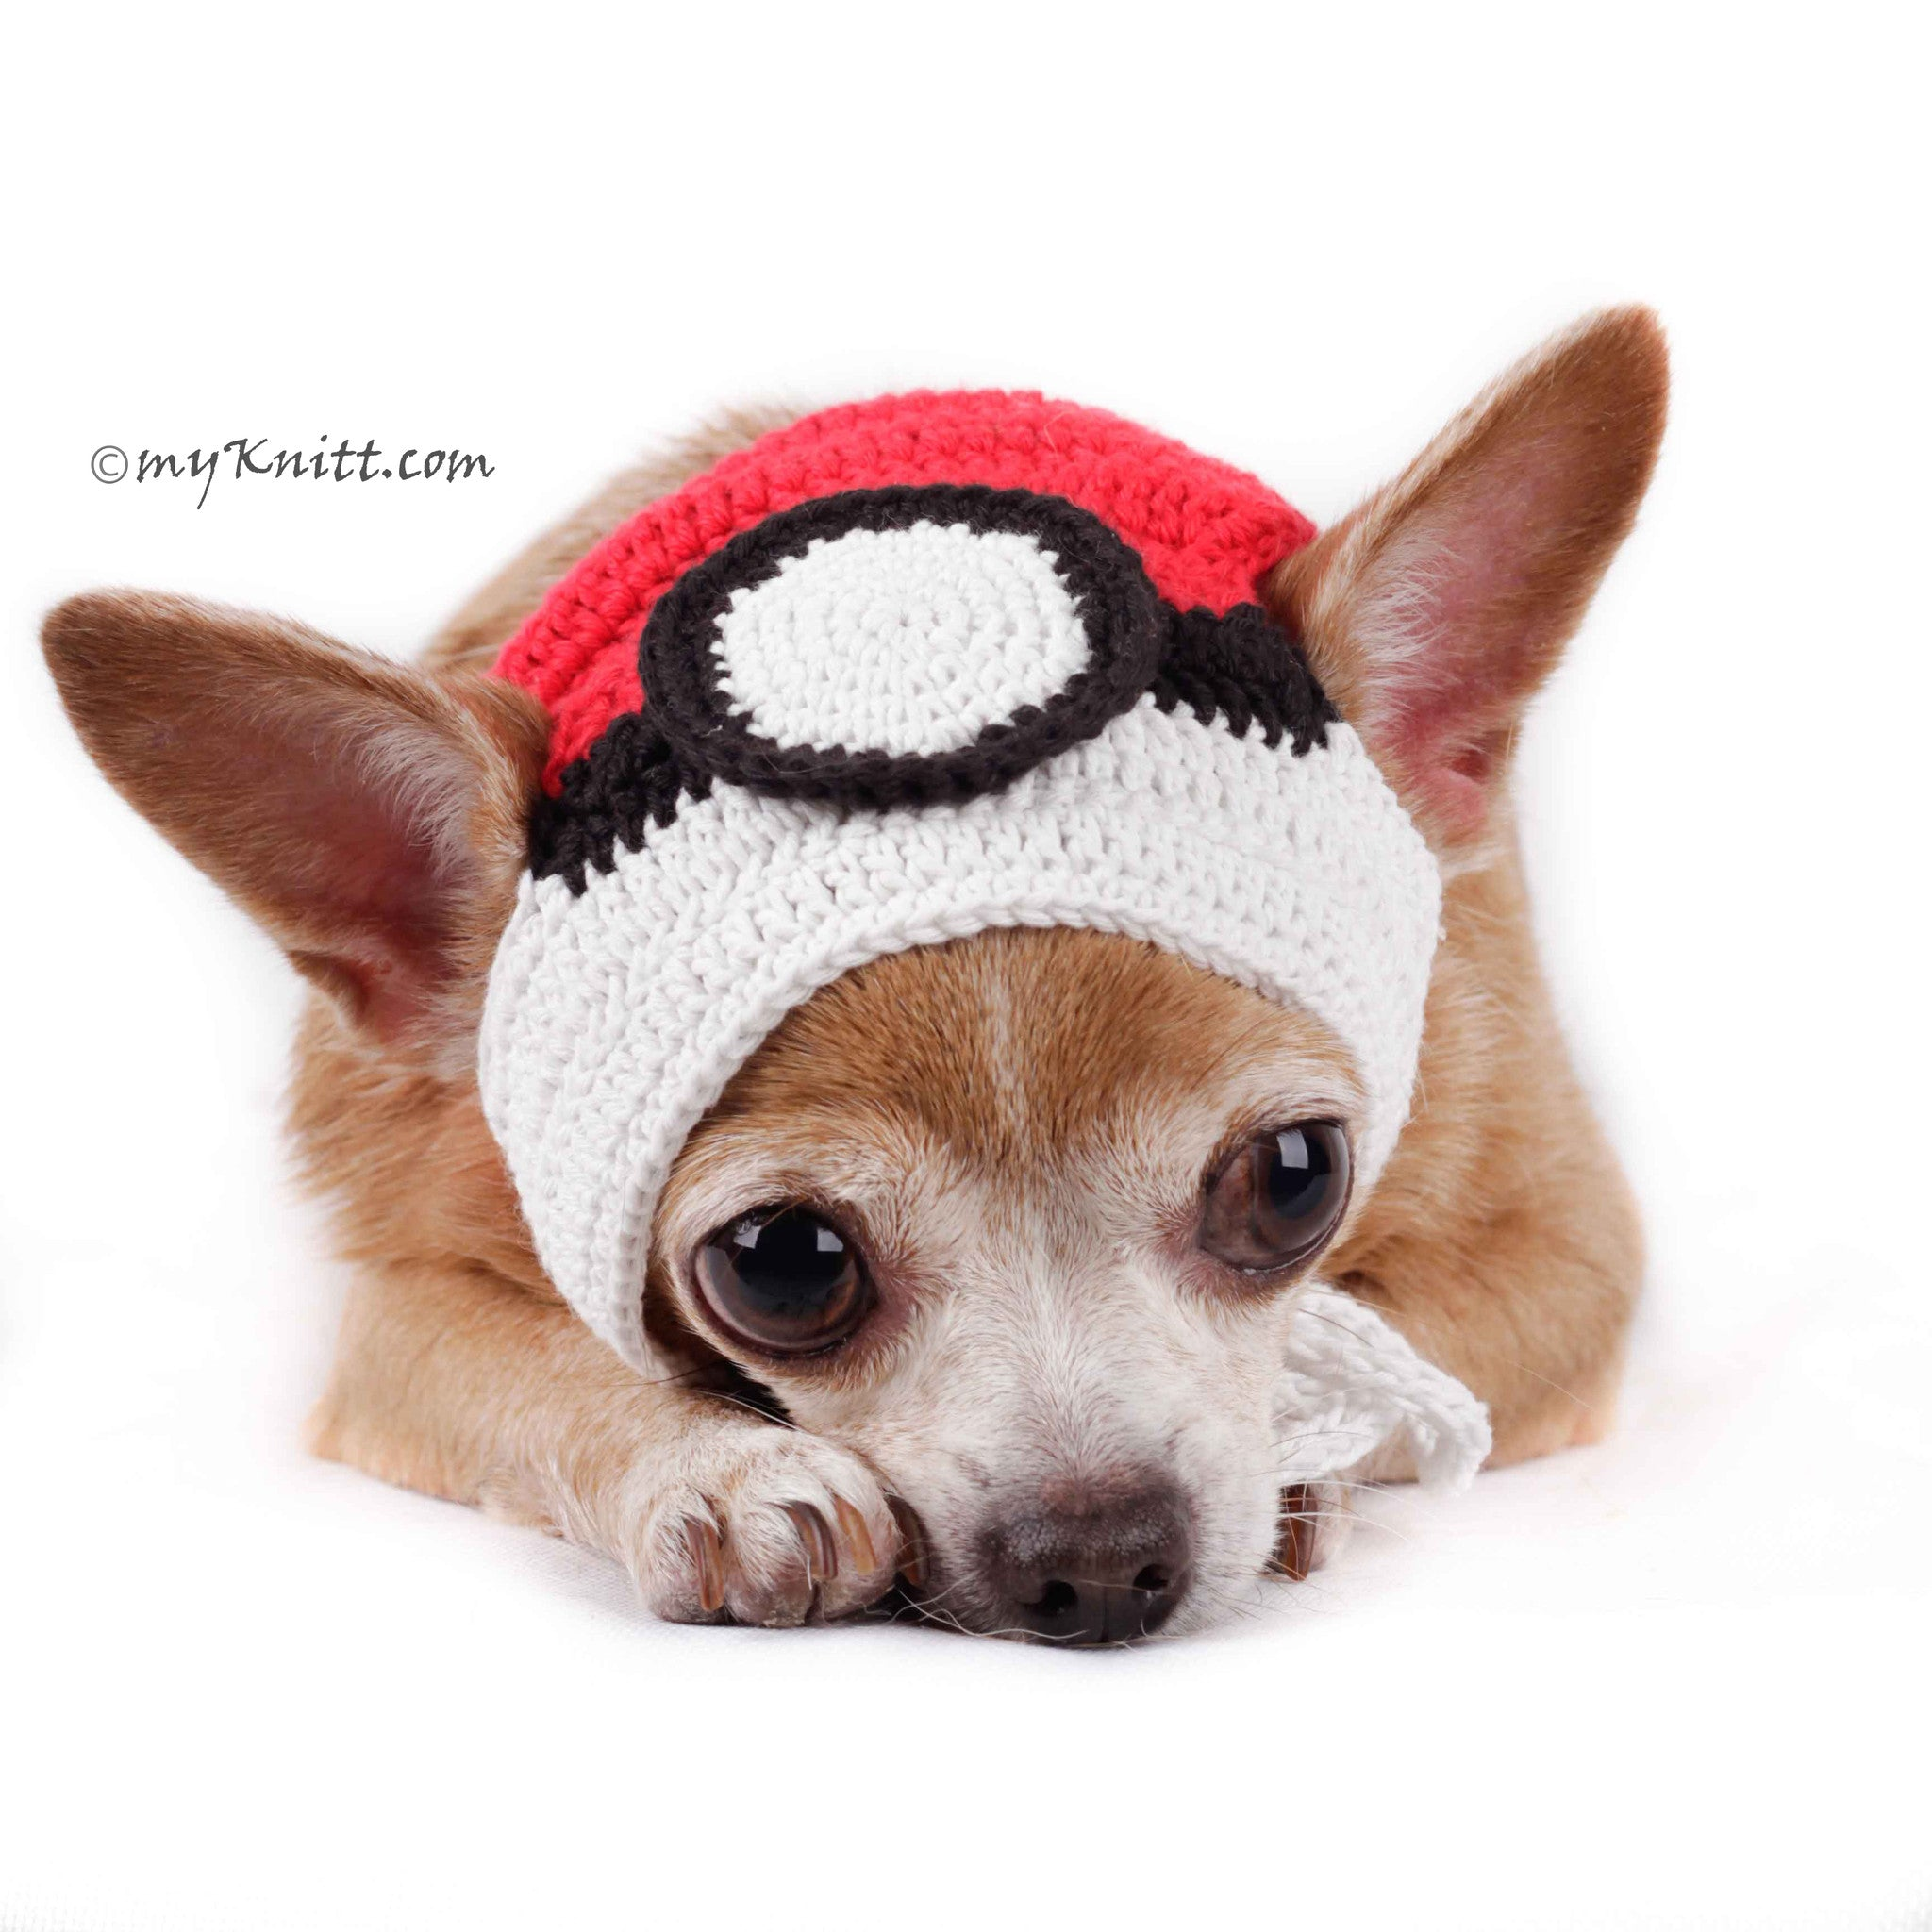 edc063a7f2982 Pokemon Ball Dog Hat Halloween Cute Pet Accessories DB1 by Myknitt ...